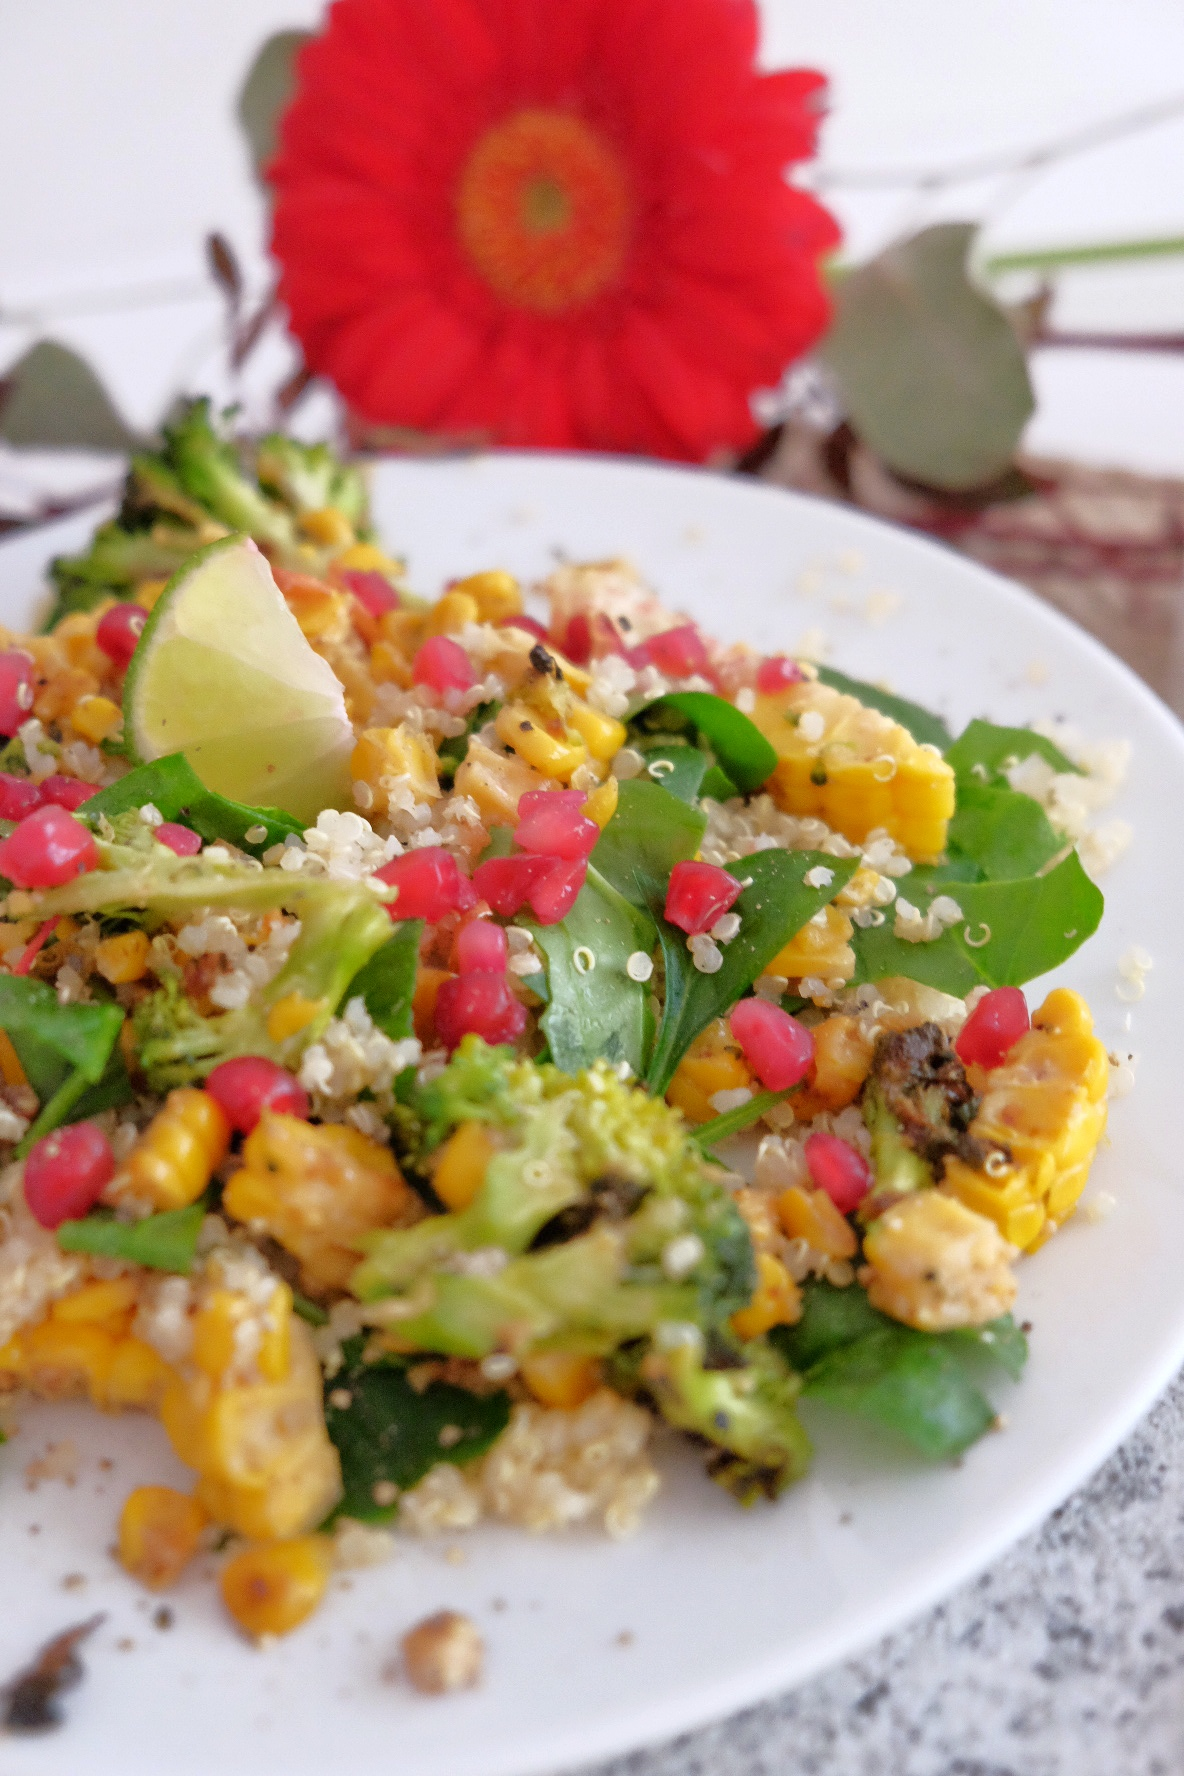 Quinoa salad with pomegranate, corn and peanut.